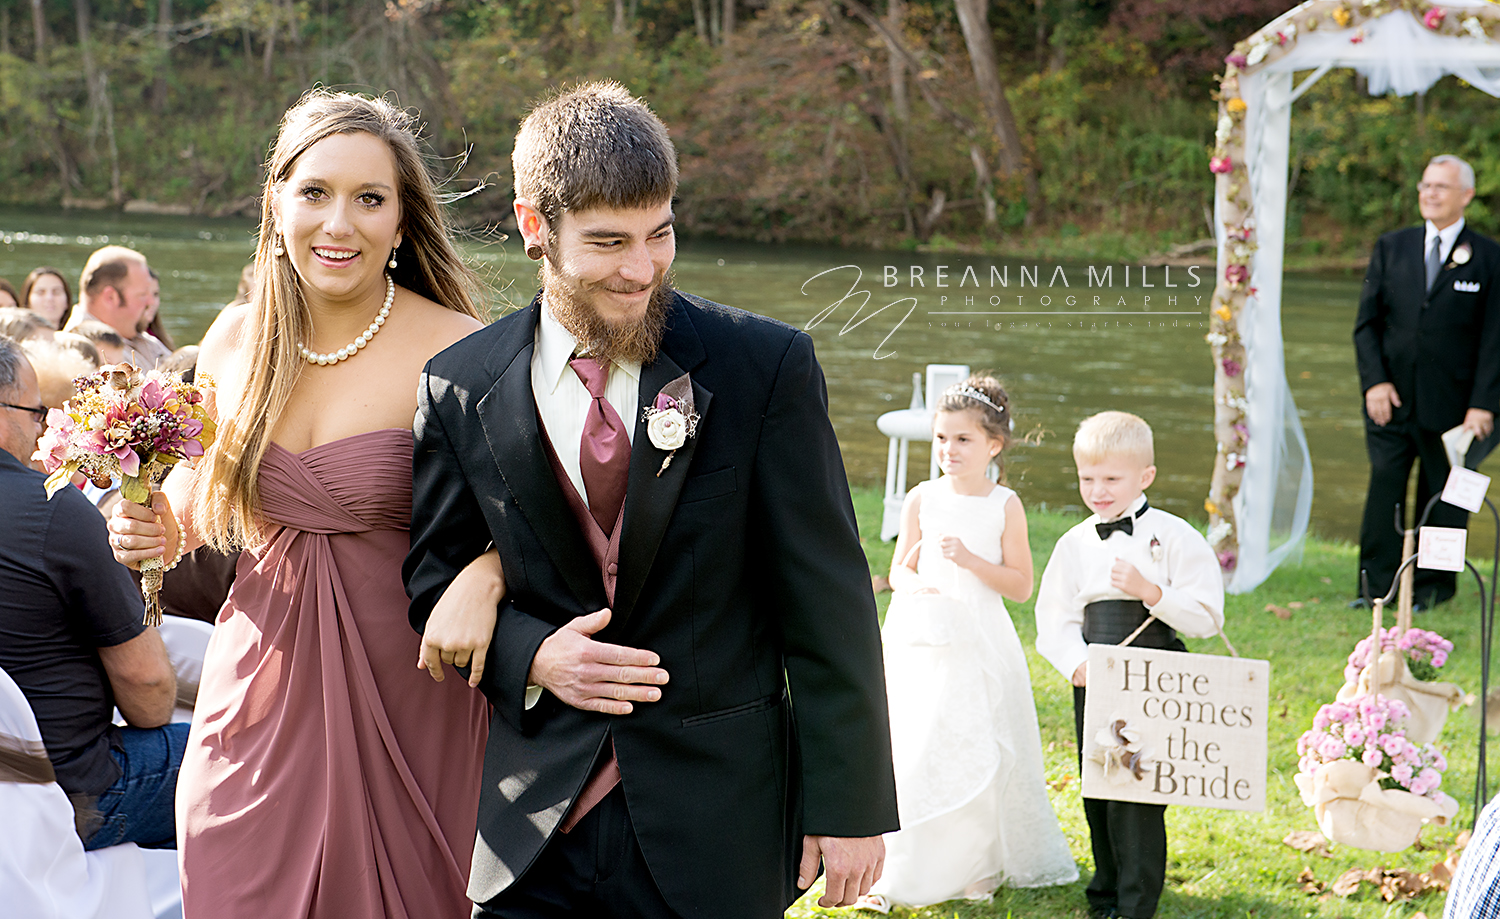 Johnson City wedding photographer, Breanna Mills Photography captured bridesmaid and groomsman during wedding ceremony.